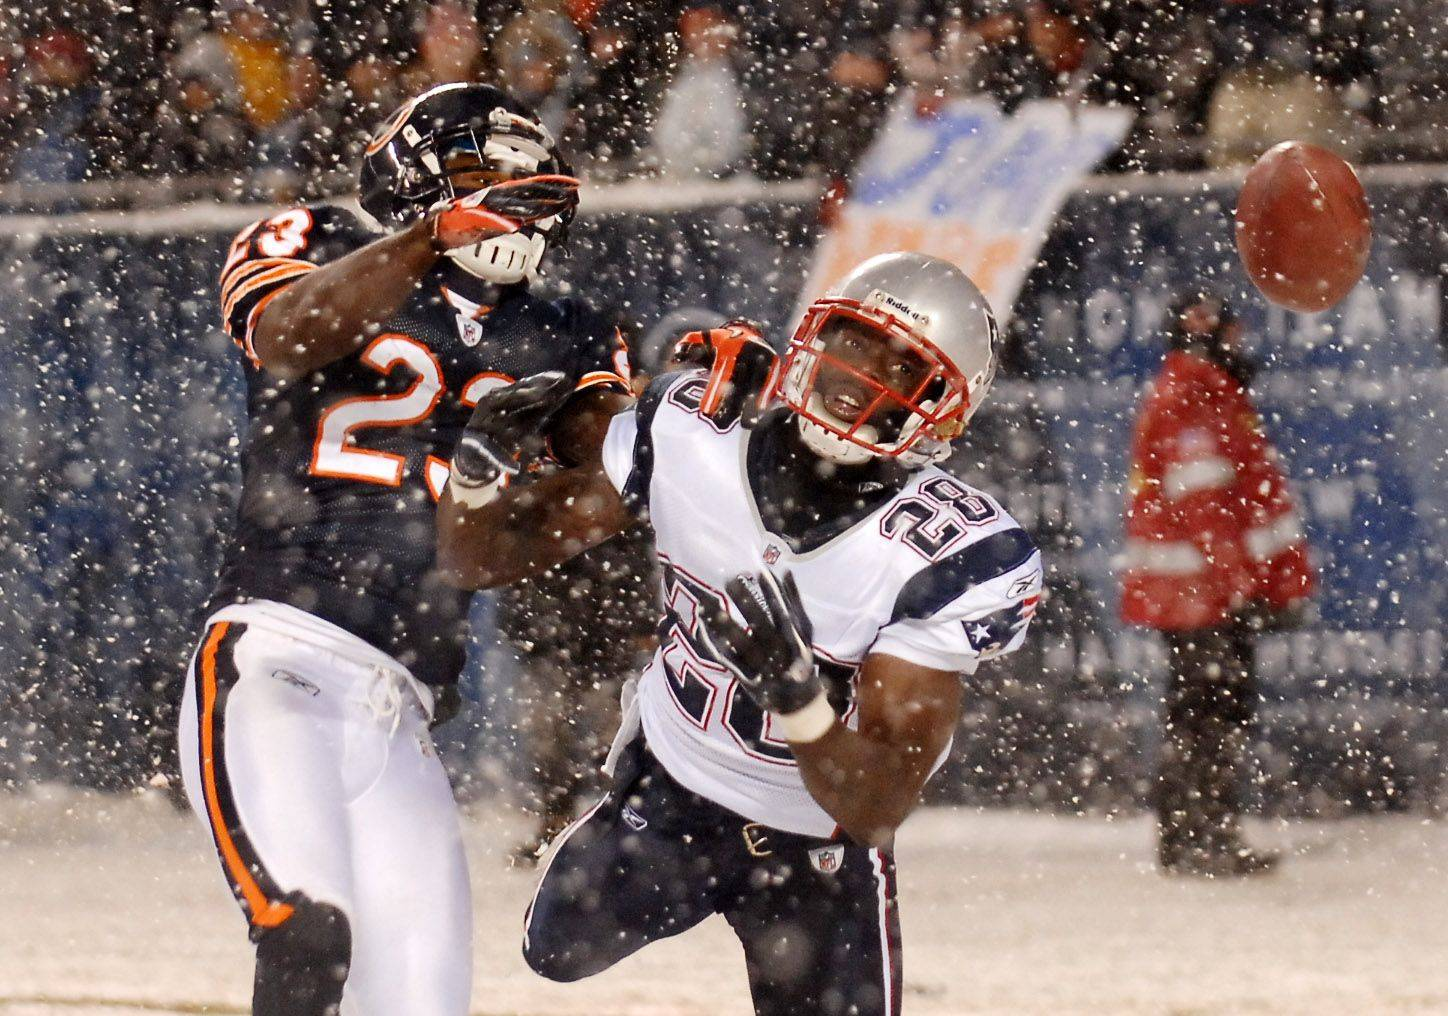 New England Patriots cornerback Darius Butler breaks up a pass intended for Chicago Bears wide receiver Devin Hester.